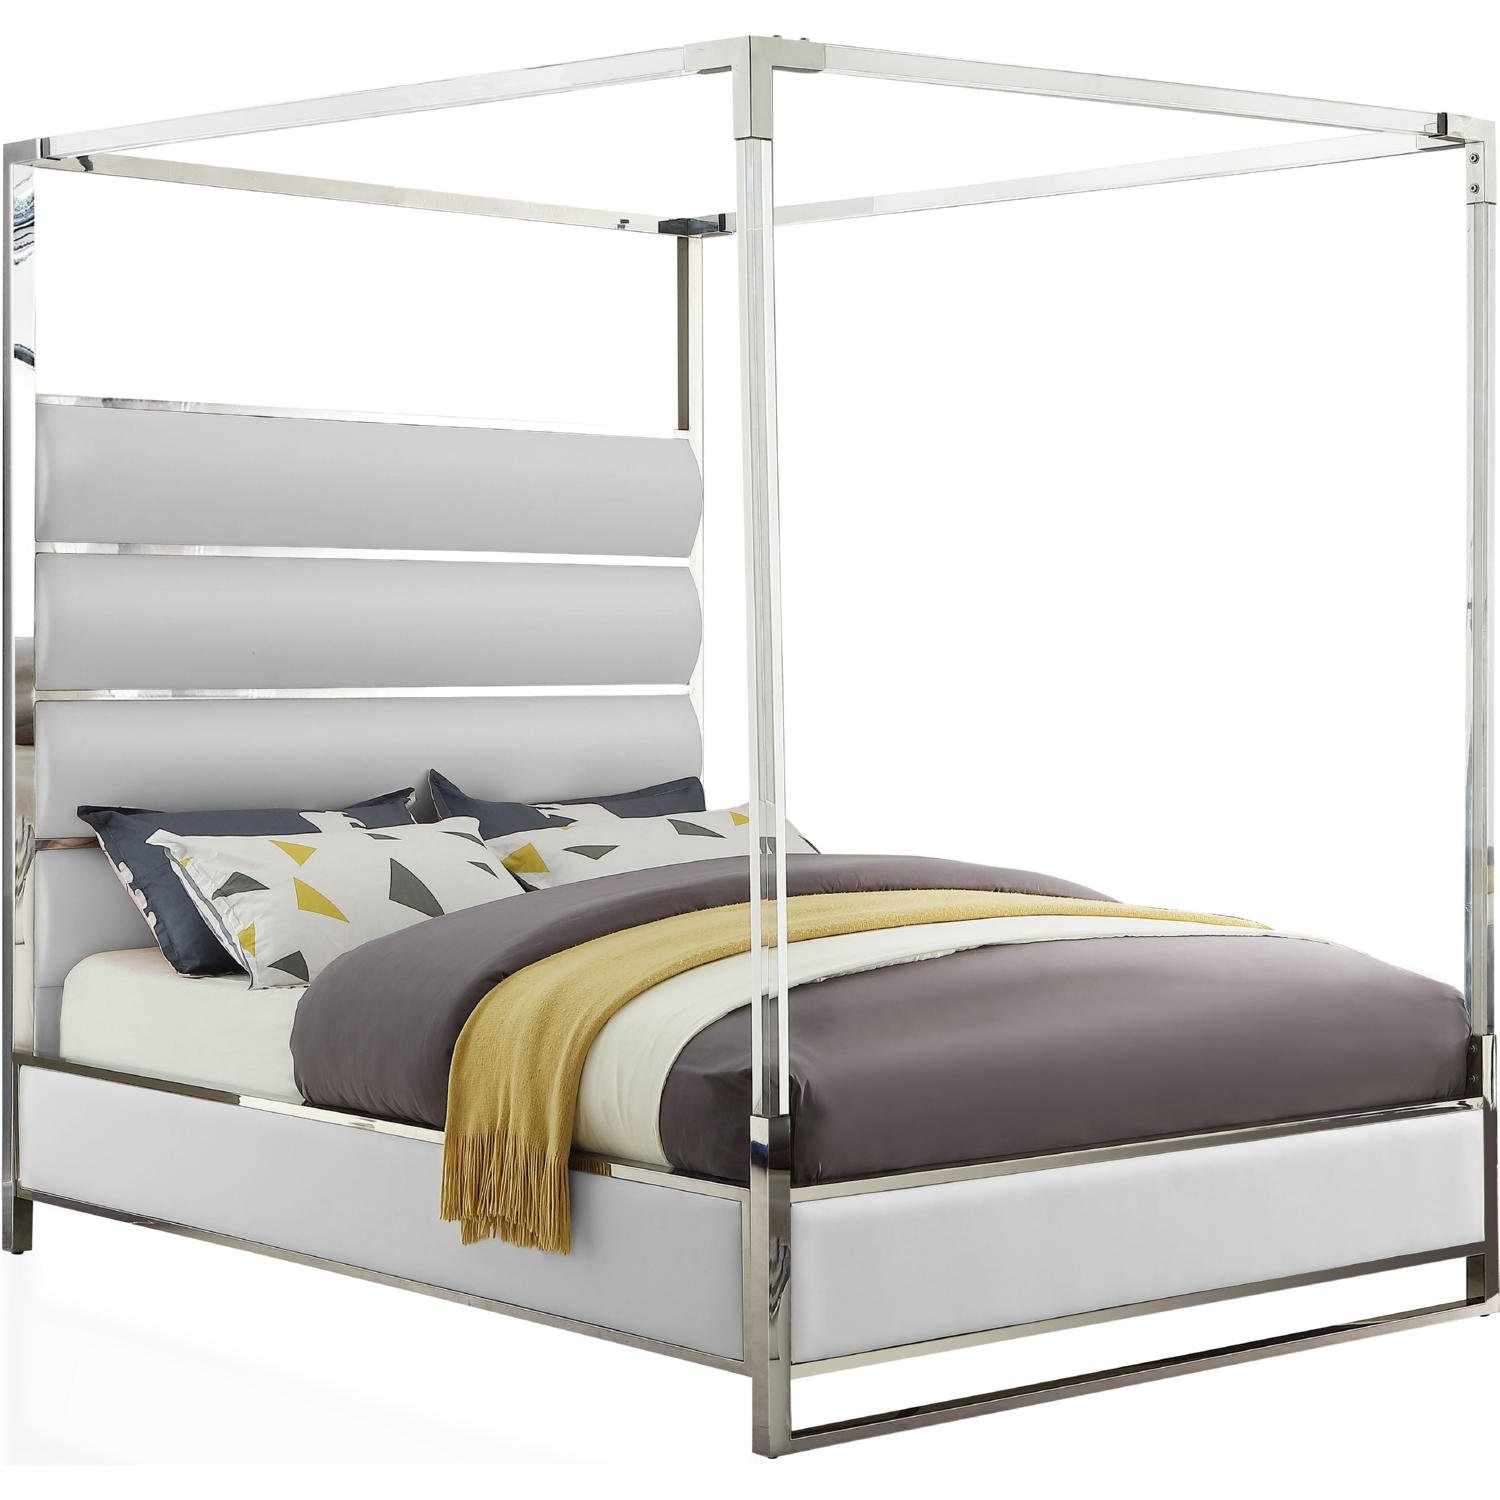 meridian encorewhite q encore canopy queen bed in white leatherette acrylic chrome